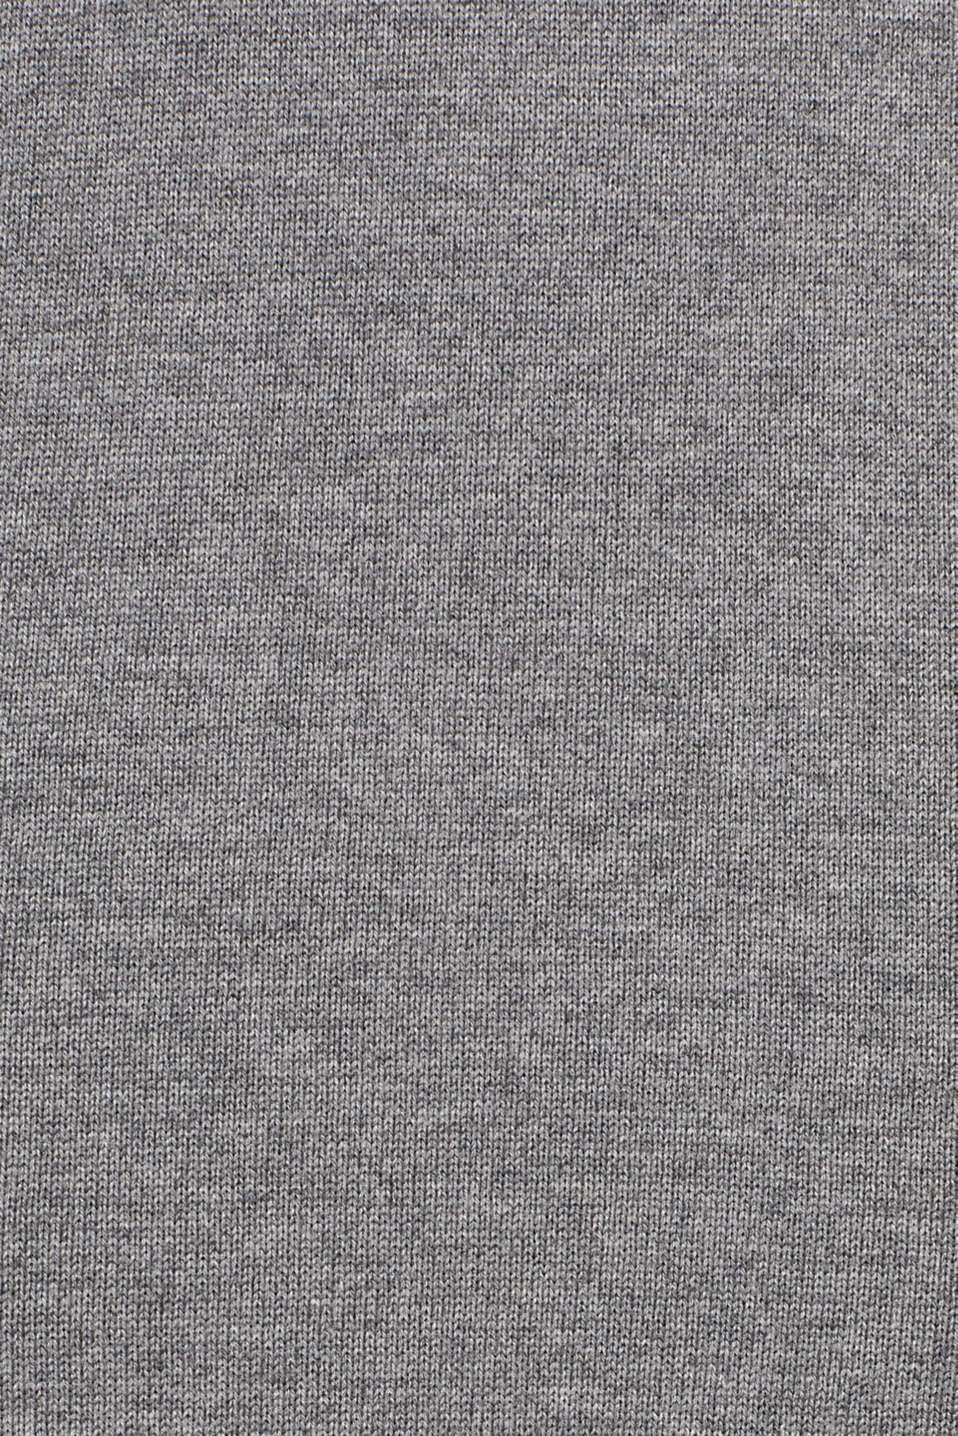 Knitted dress with texture effects, GUNMETAL 5, detail image number 4